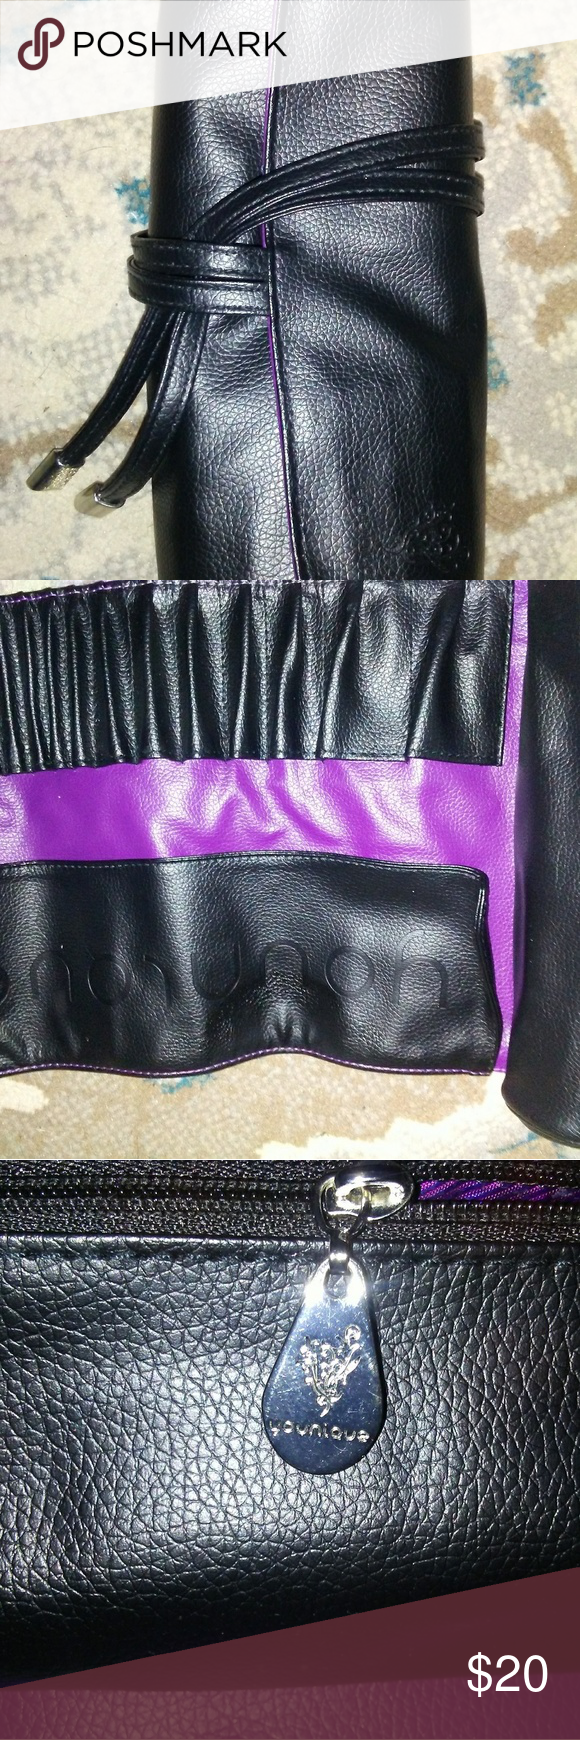 Younique Makeup/Brush Bag Makeup brush bag, Younique